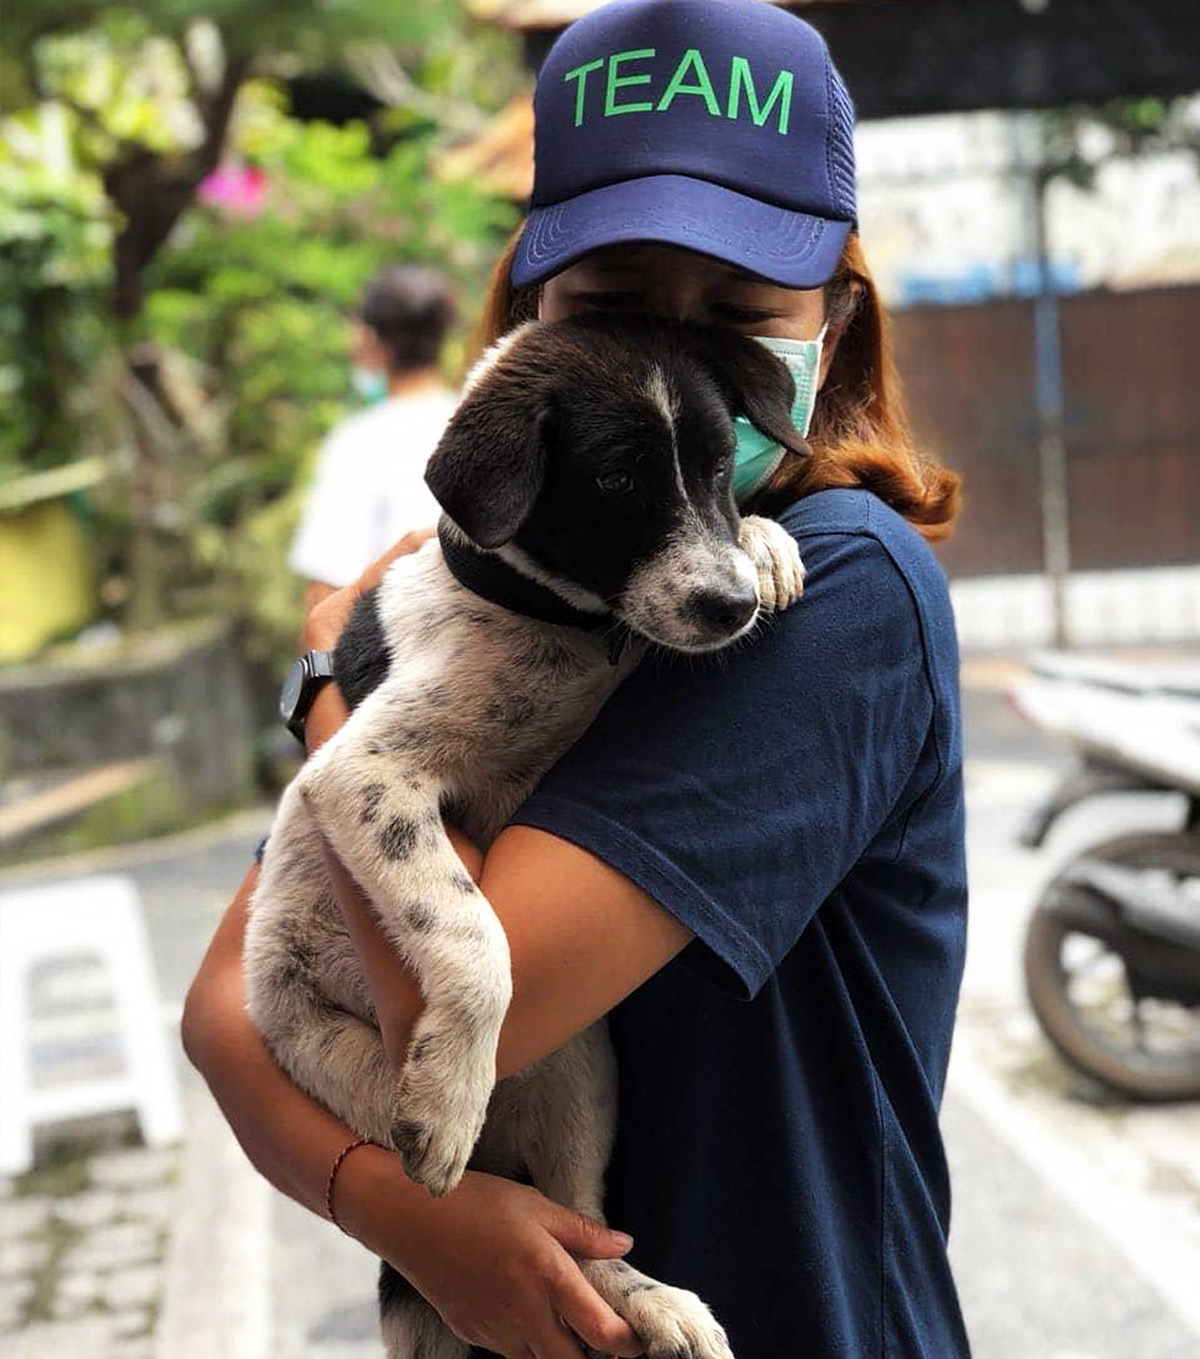 Bali Pet Crusaders Care for Dogs